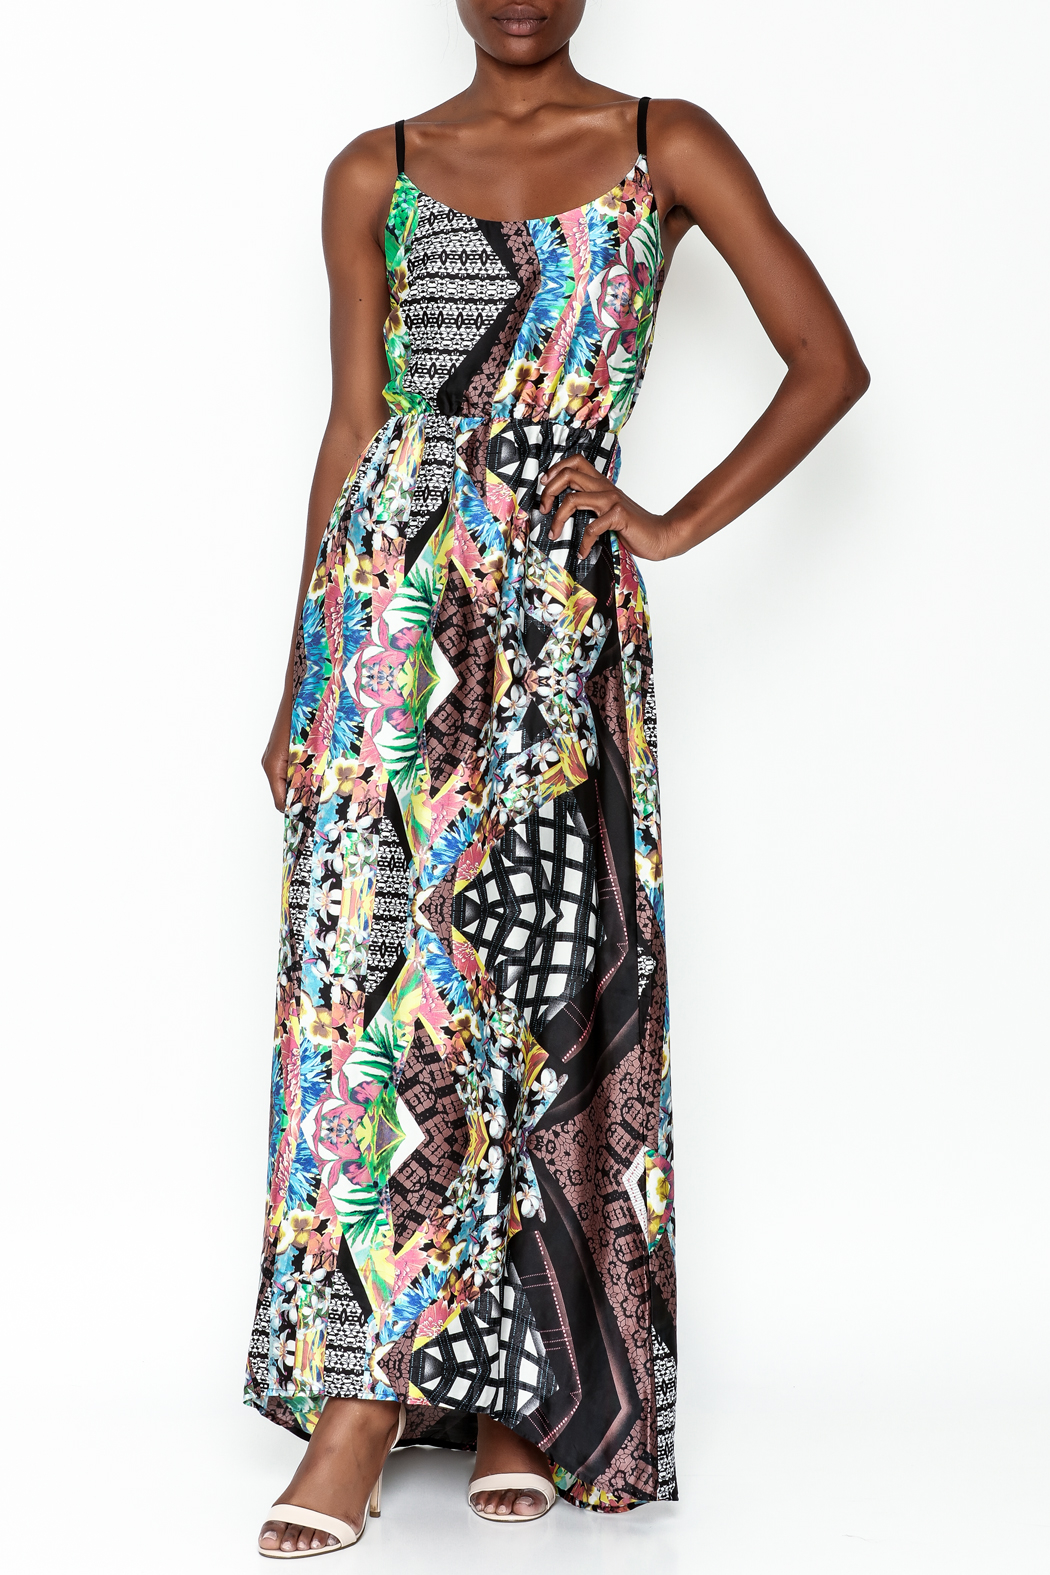 LIFTED Boutique Printed Maxi Dress - Main Image